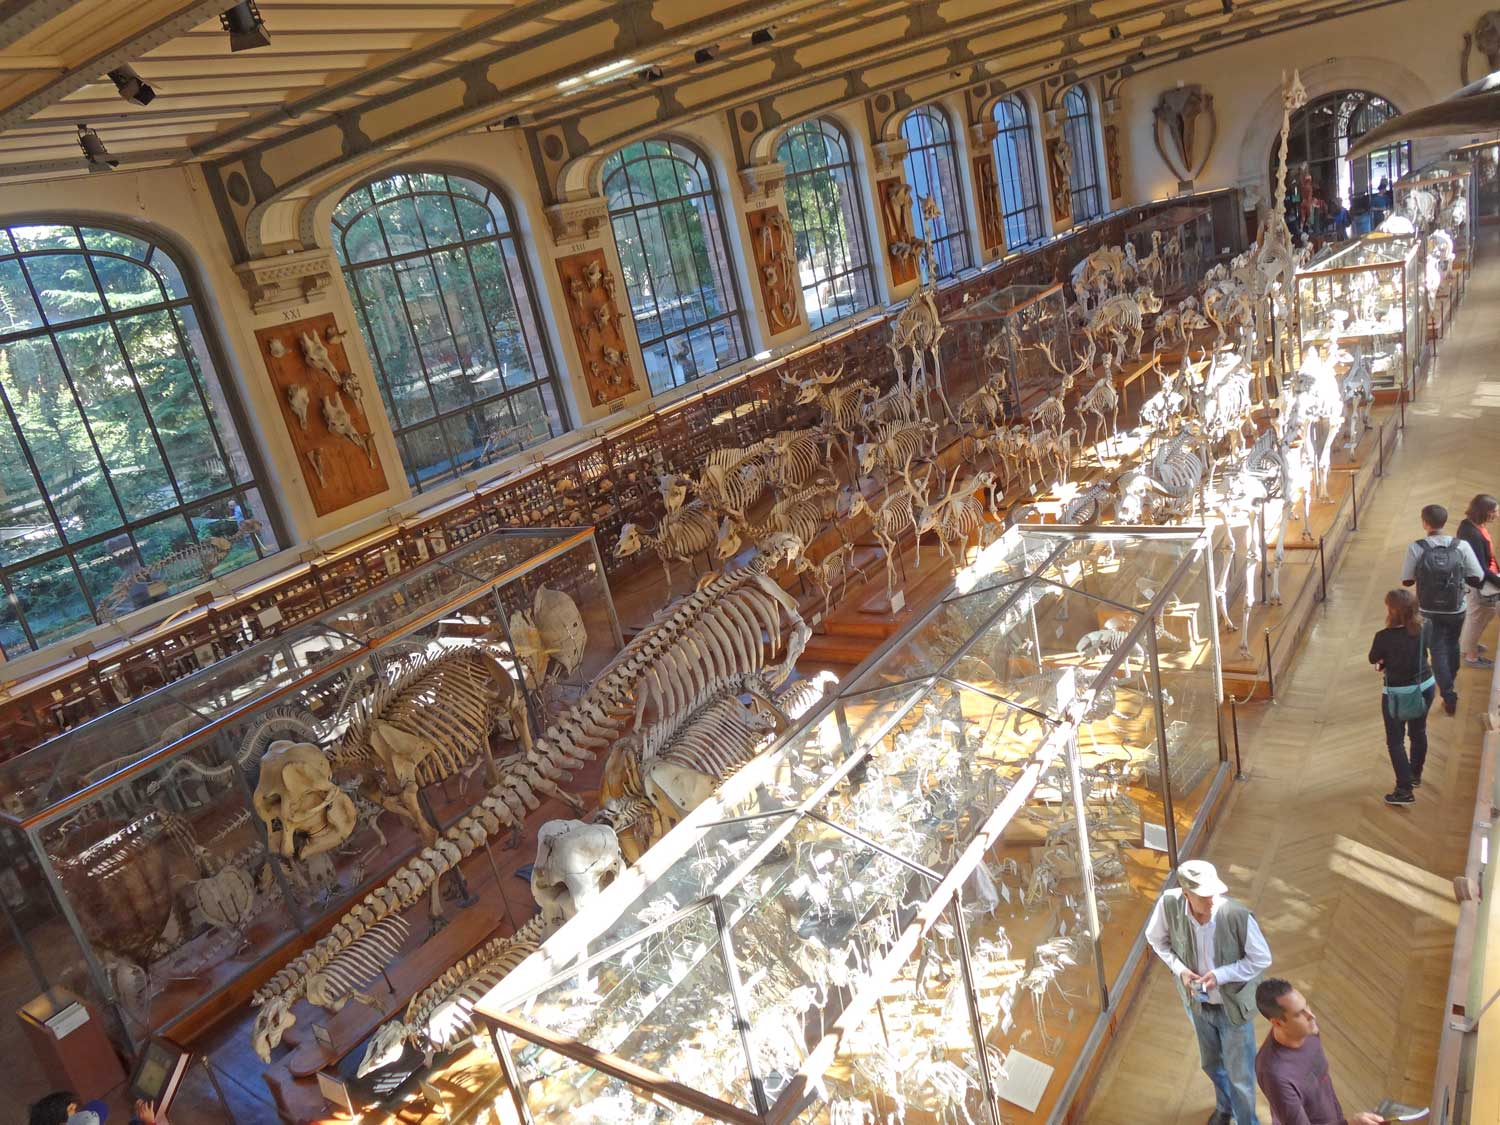 Rows of skeletons of animals in a Paris museum